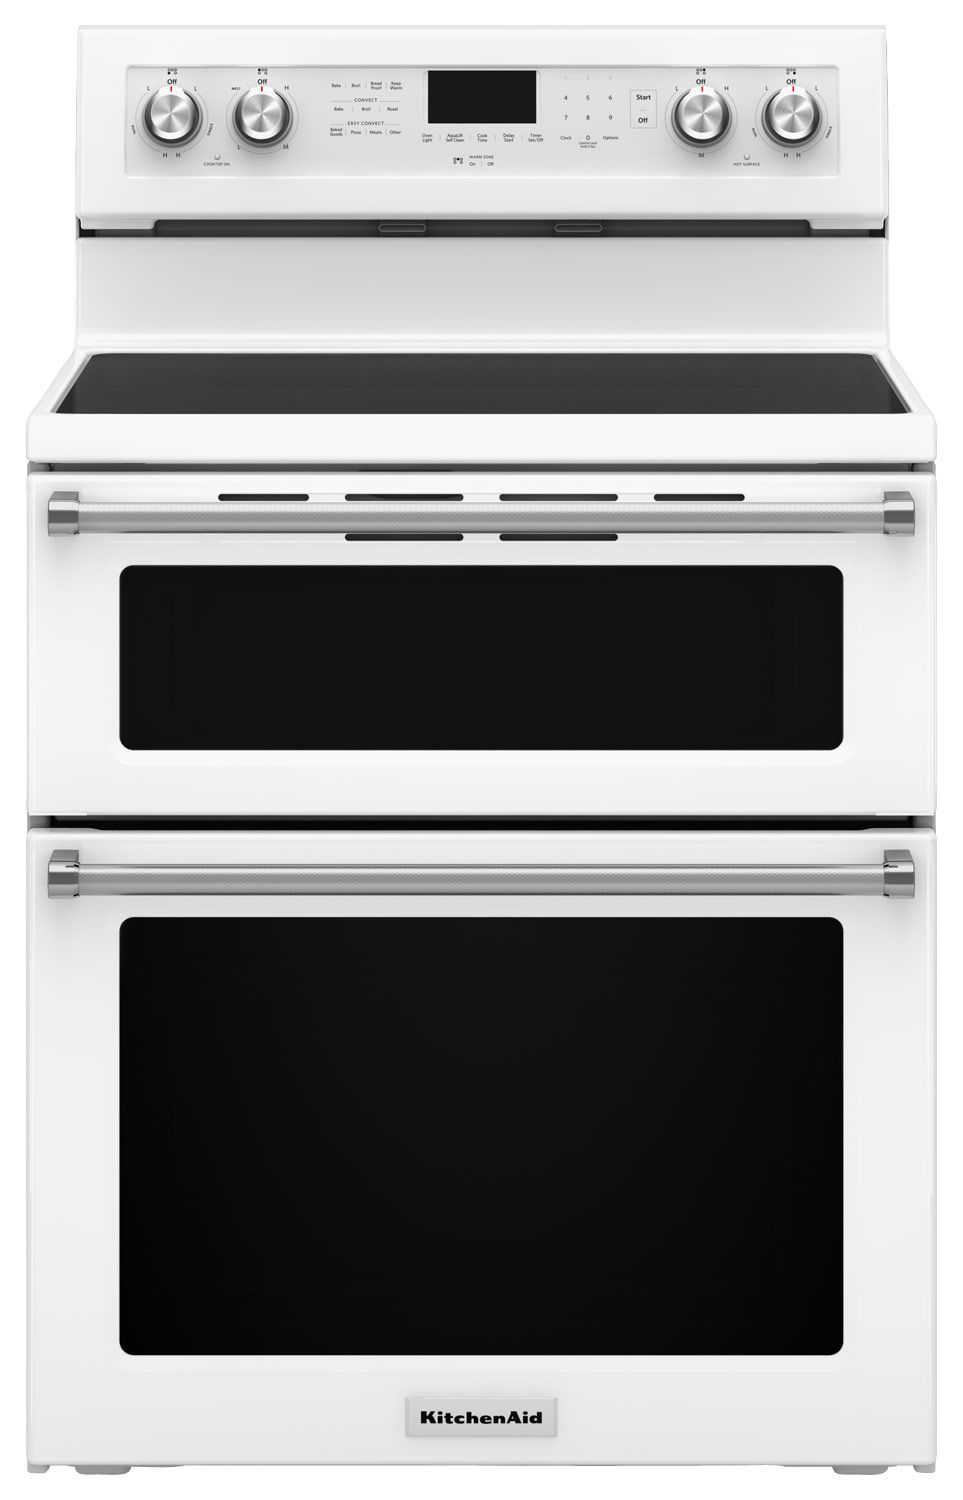 Kitchenaid 67 cu ft selfcleaning freestanding double